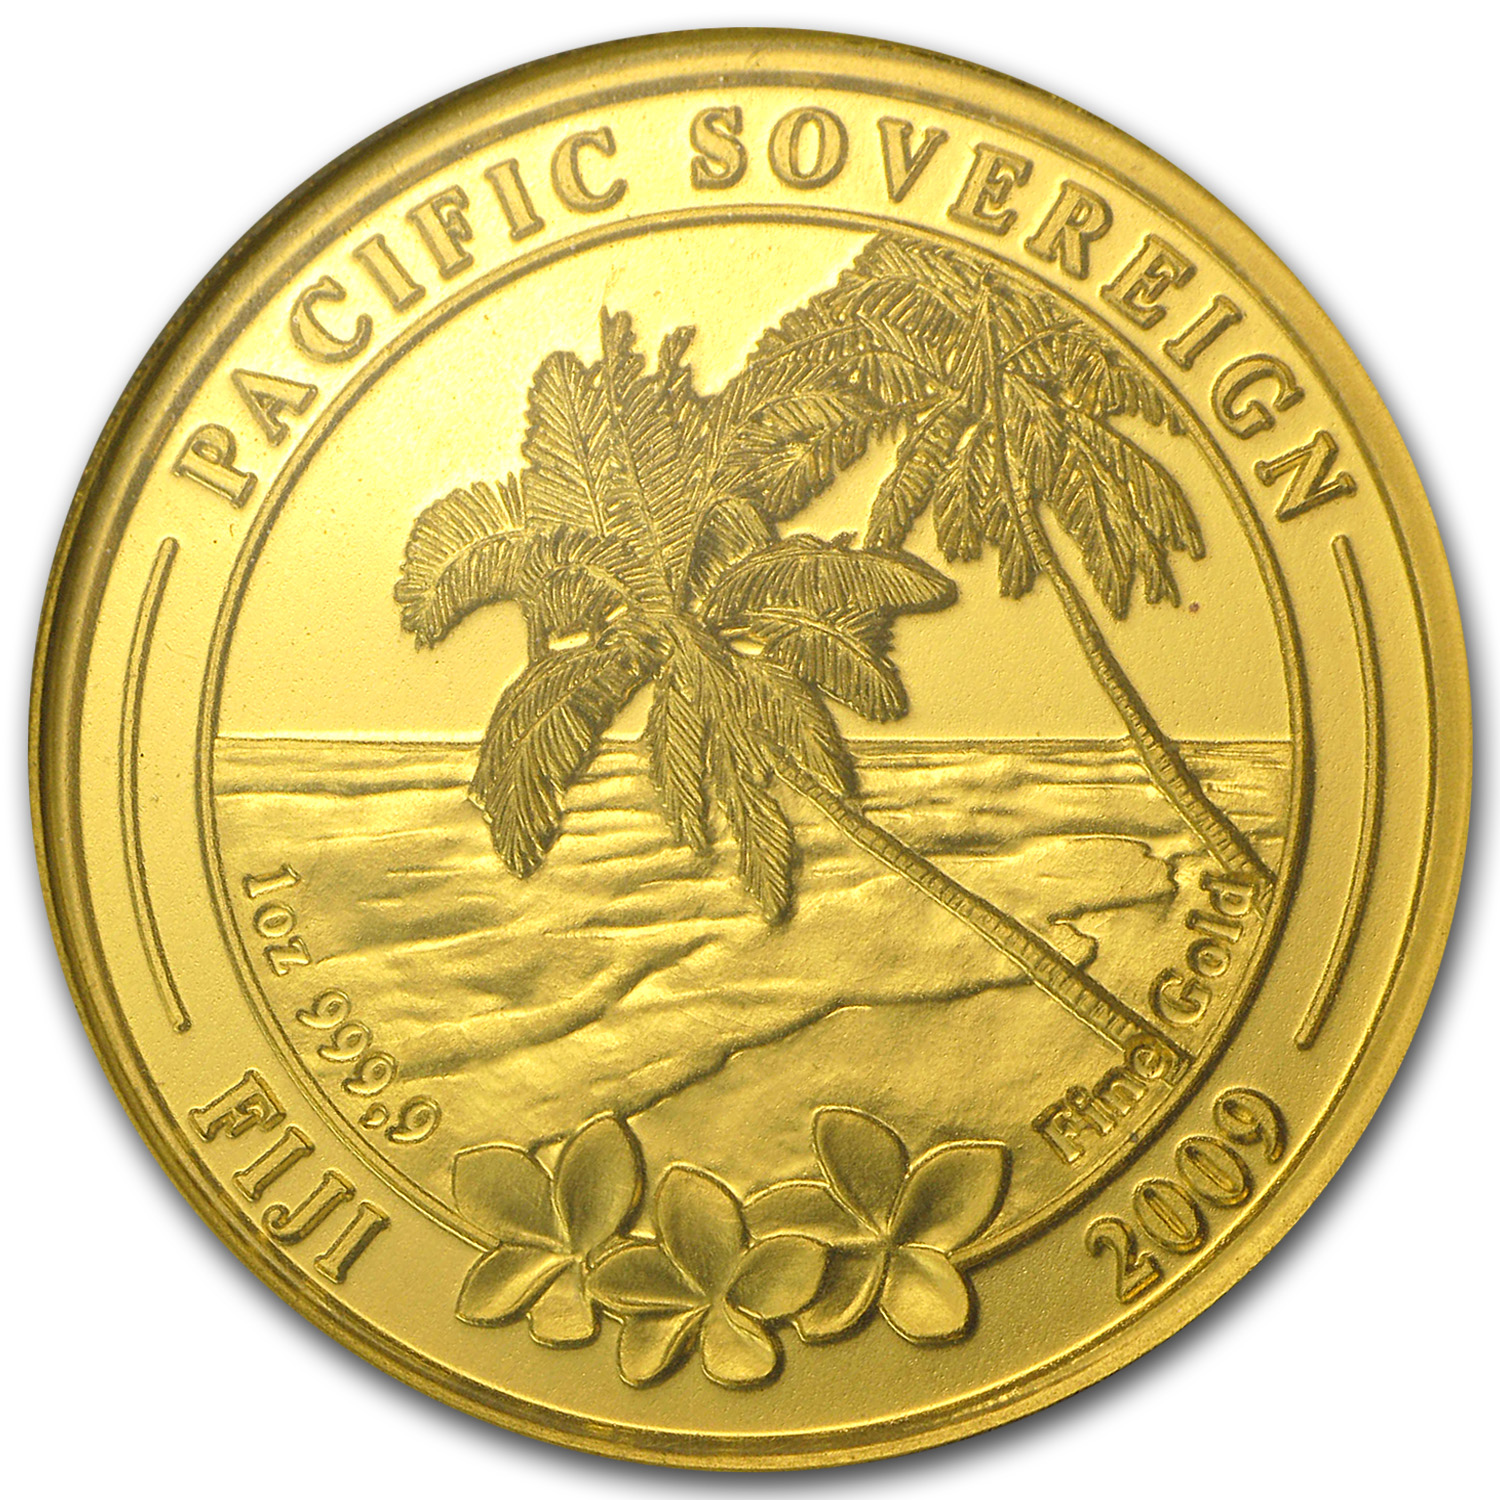 2009 1 oz Gold Fiji $100 Pacific Sovereign .9999 (In Assay Card)